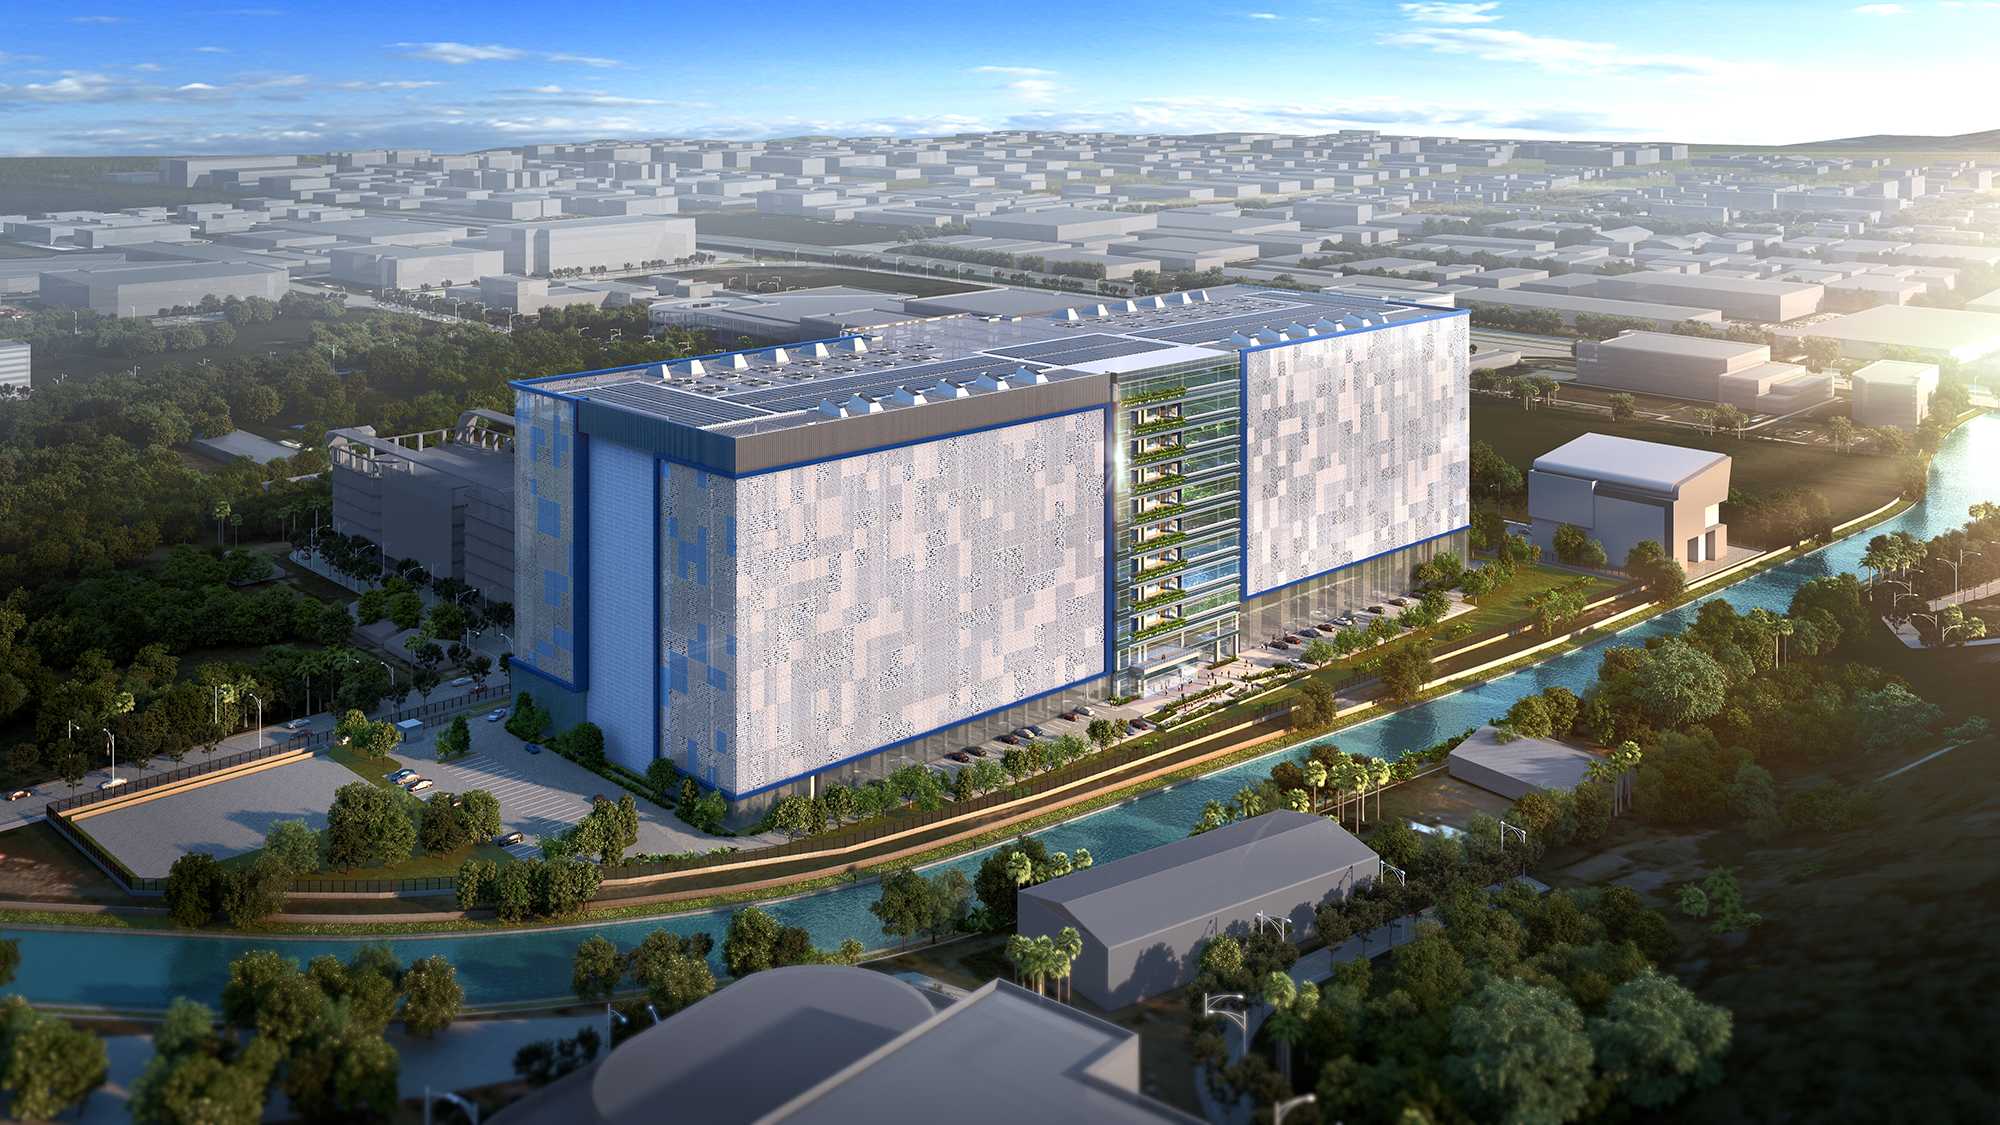 Rethinking data center design for Singapore - Facebook Code